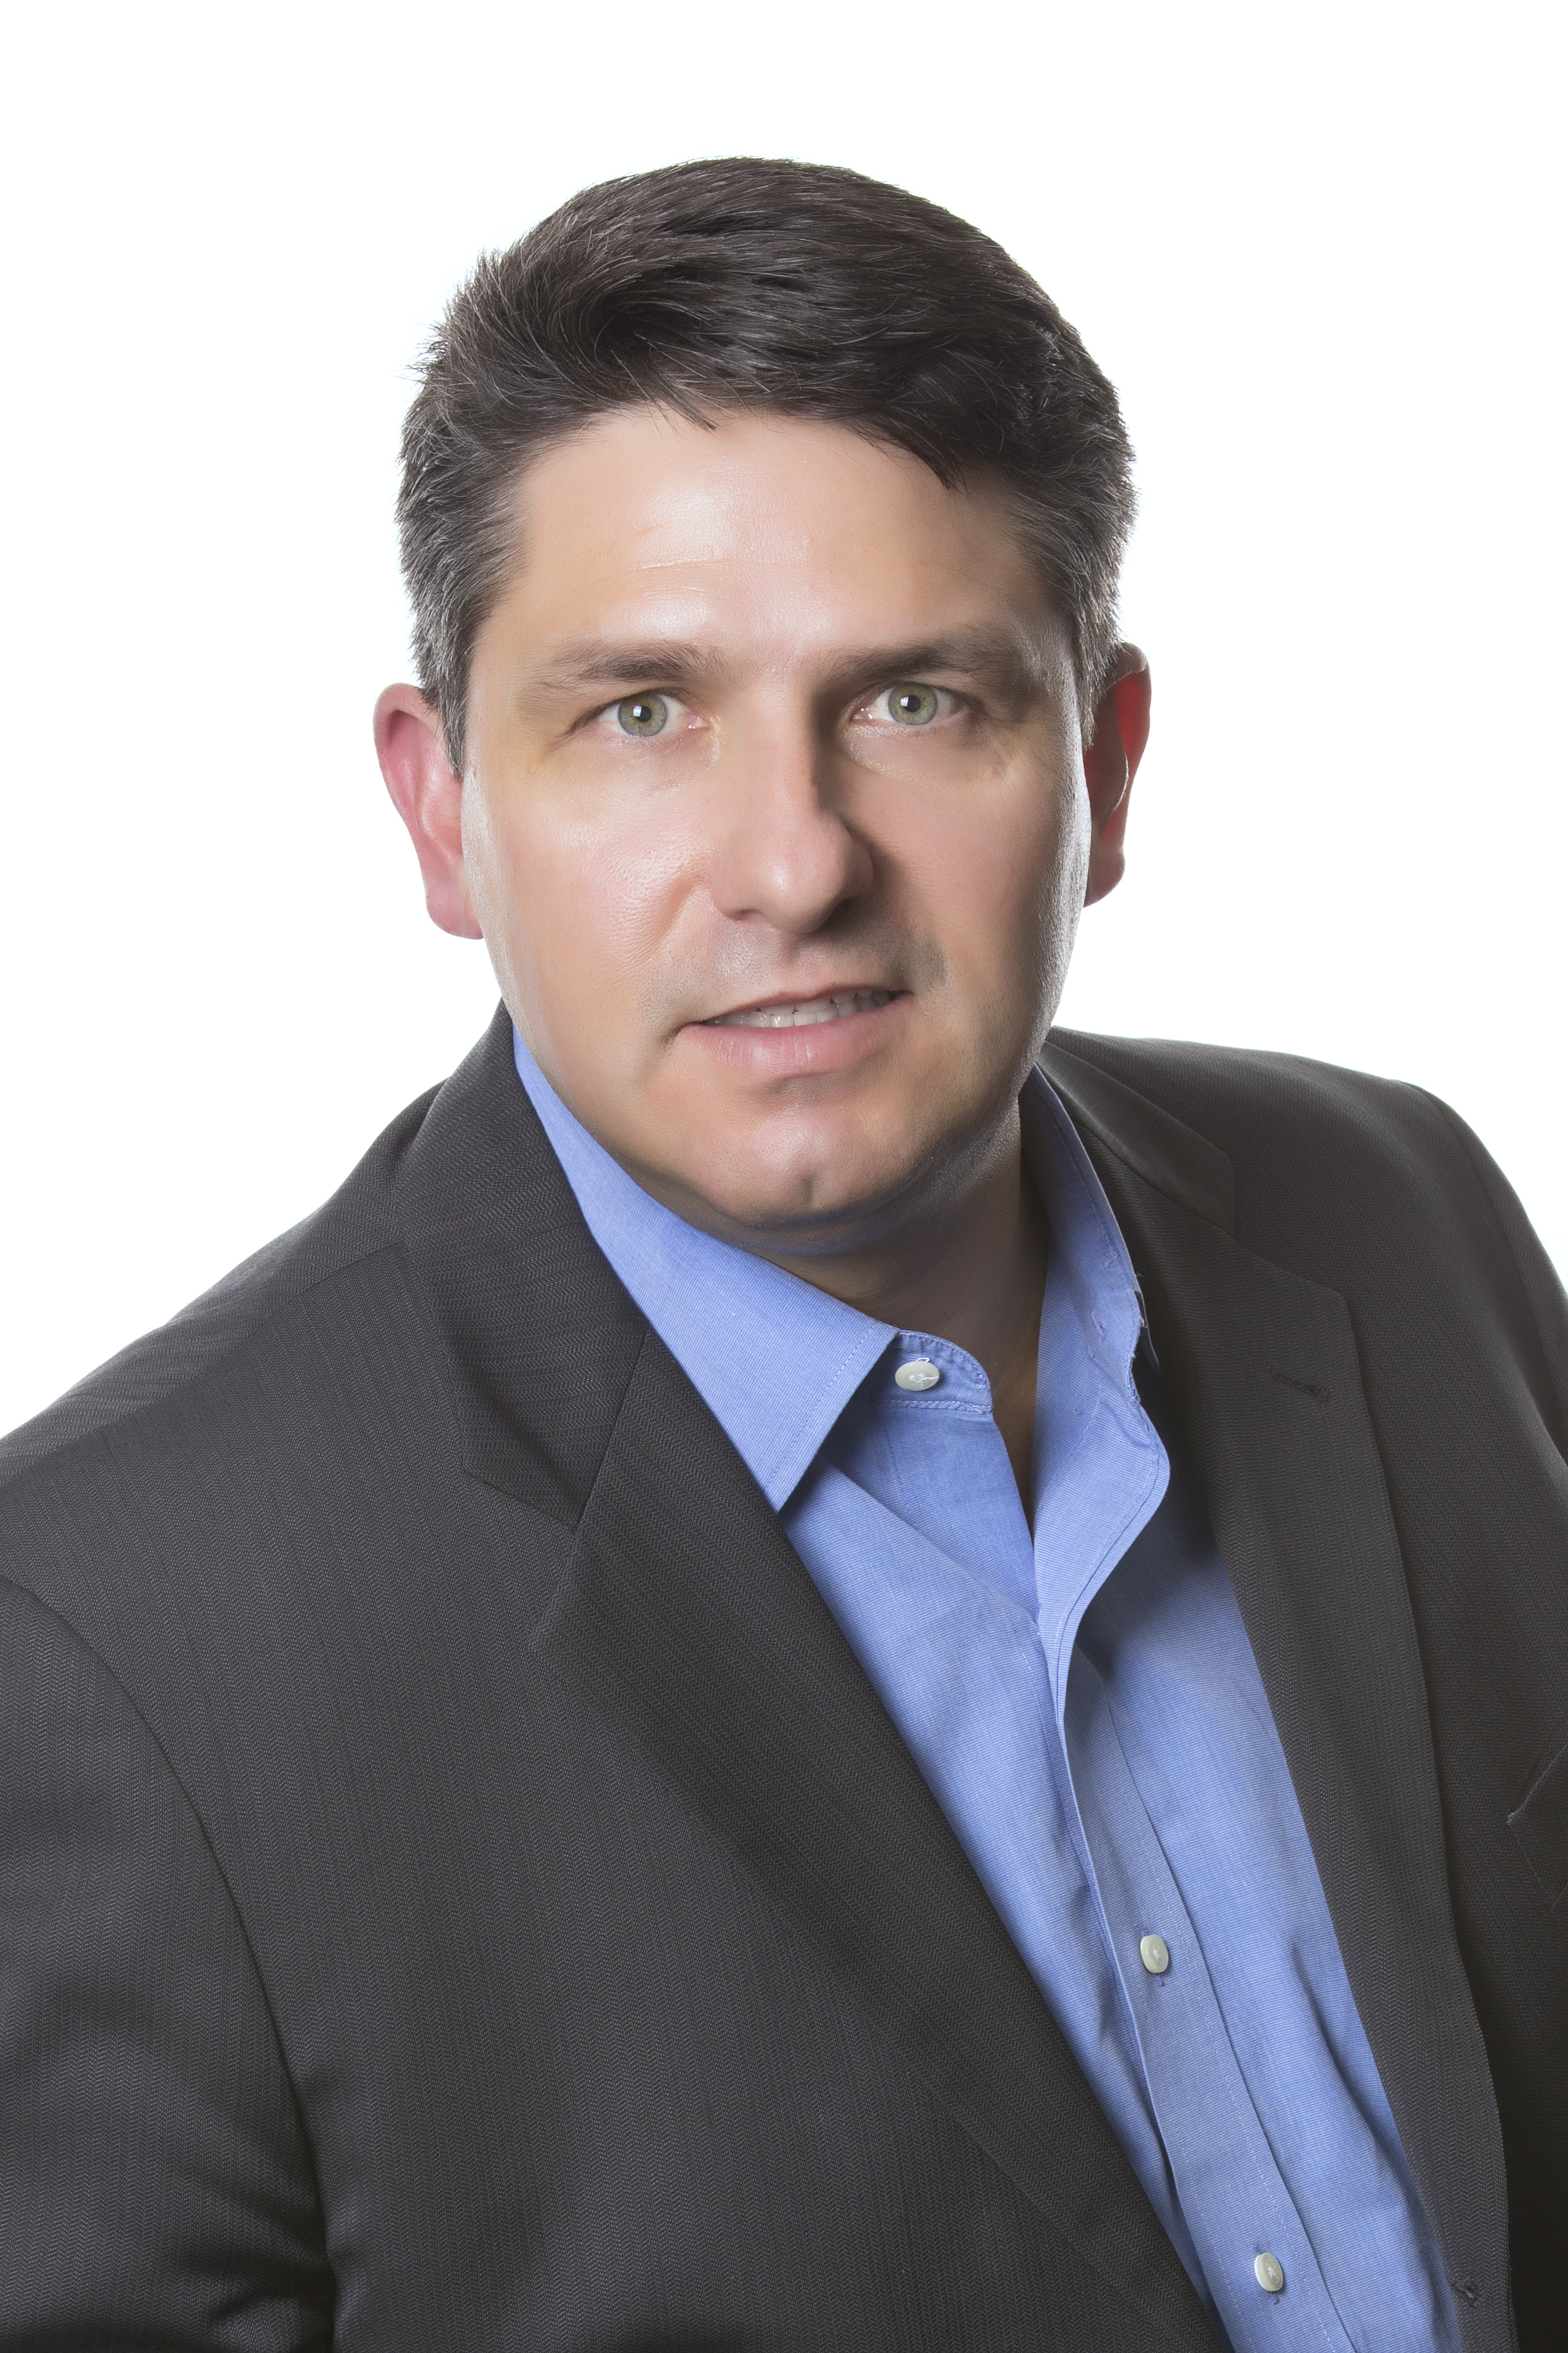 Christopher W. Cabrera, founder and CEO of Xactly